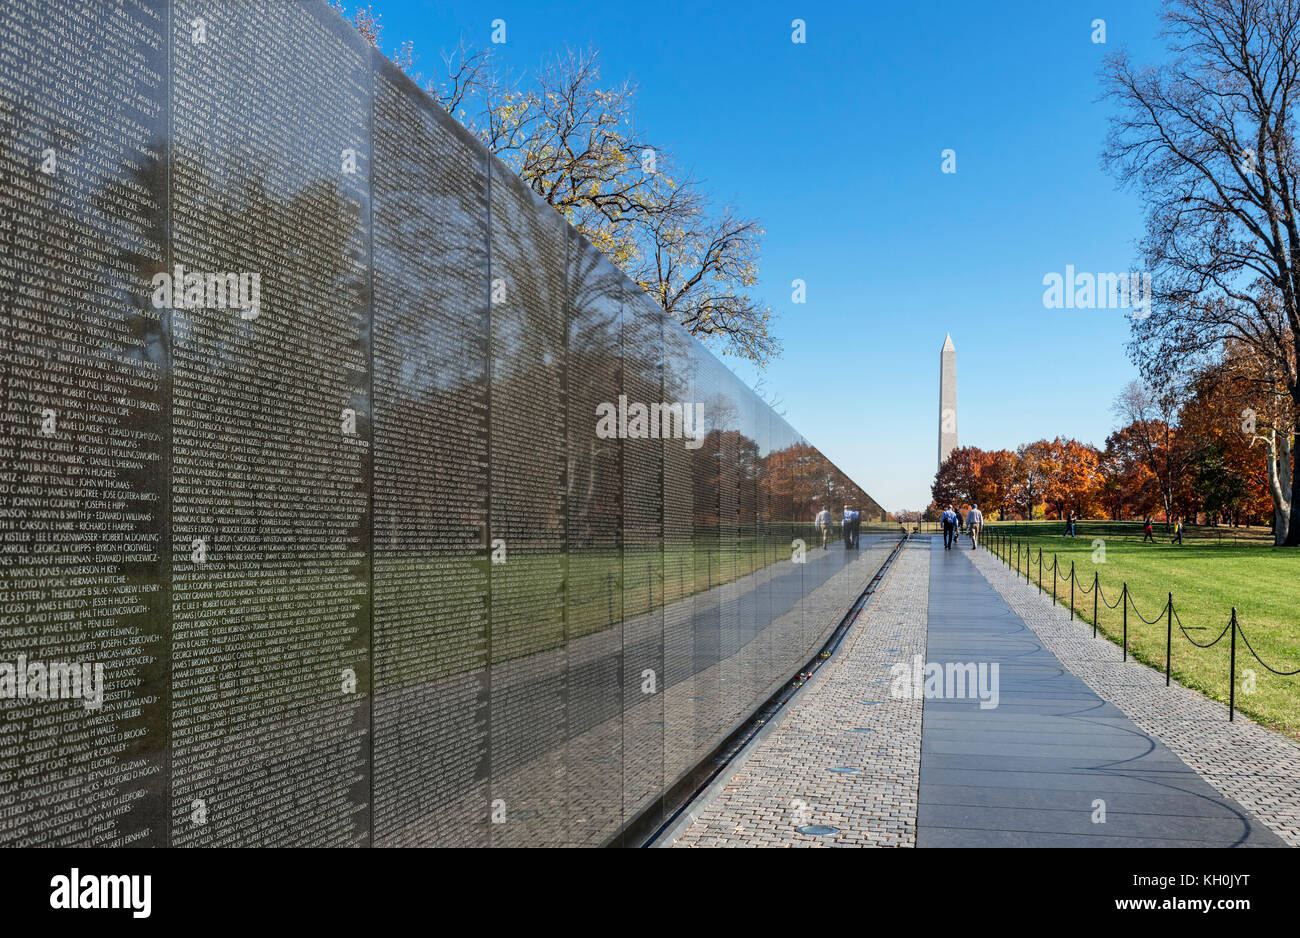 The Memorial Wall at the Vietnam Veterans Memorial with the Washington Monument in the distance, Washington DC, - Stock Image